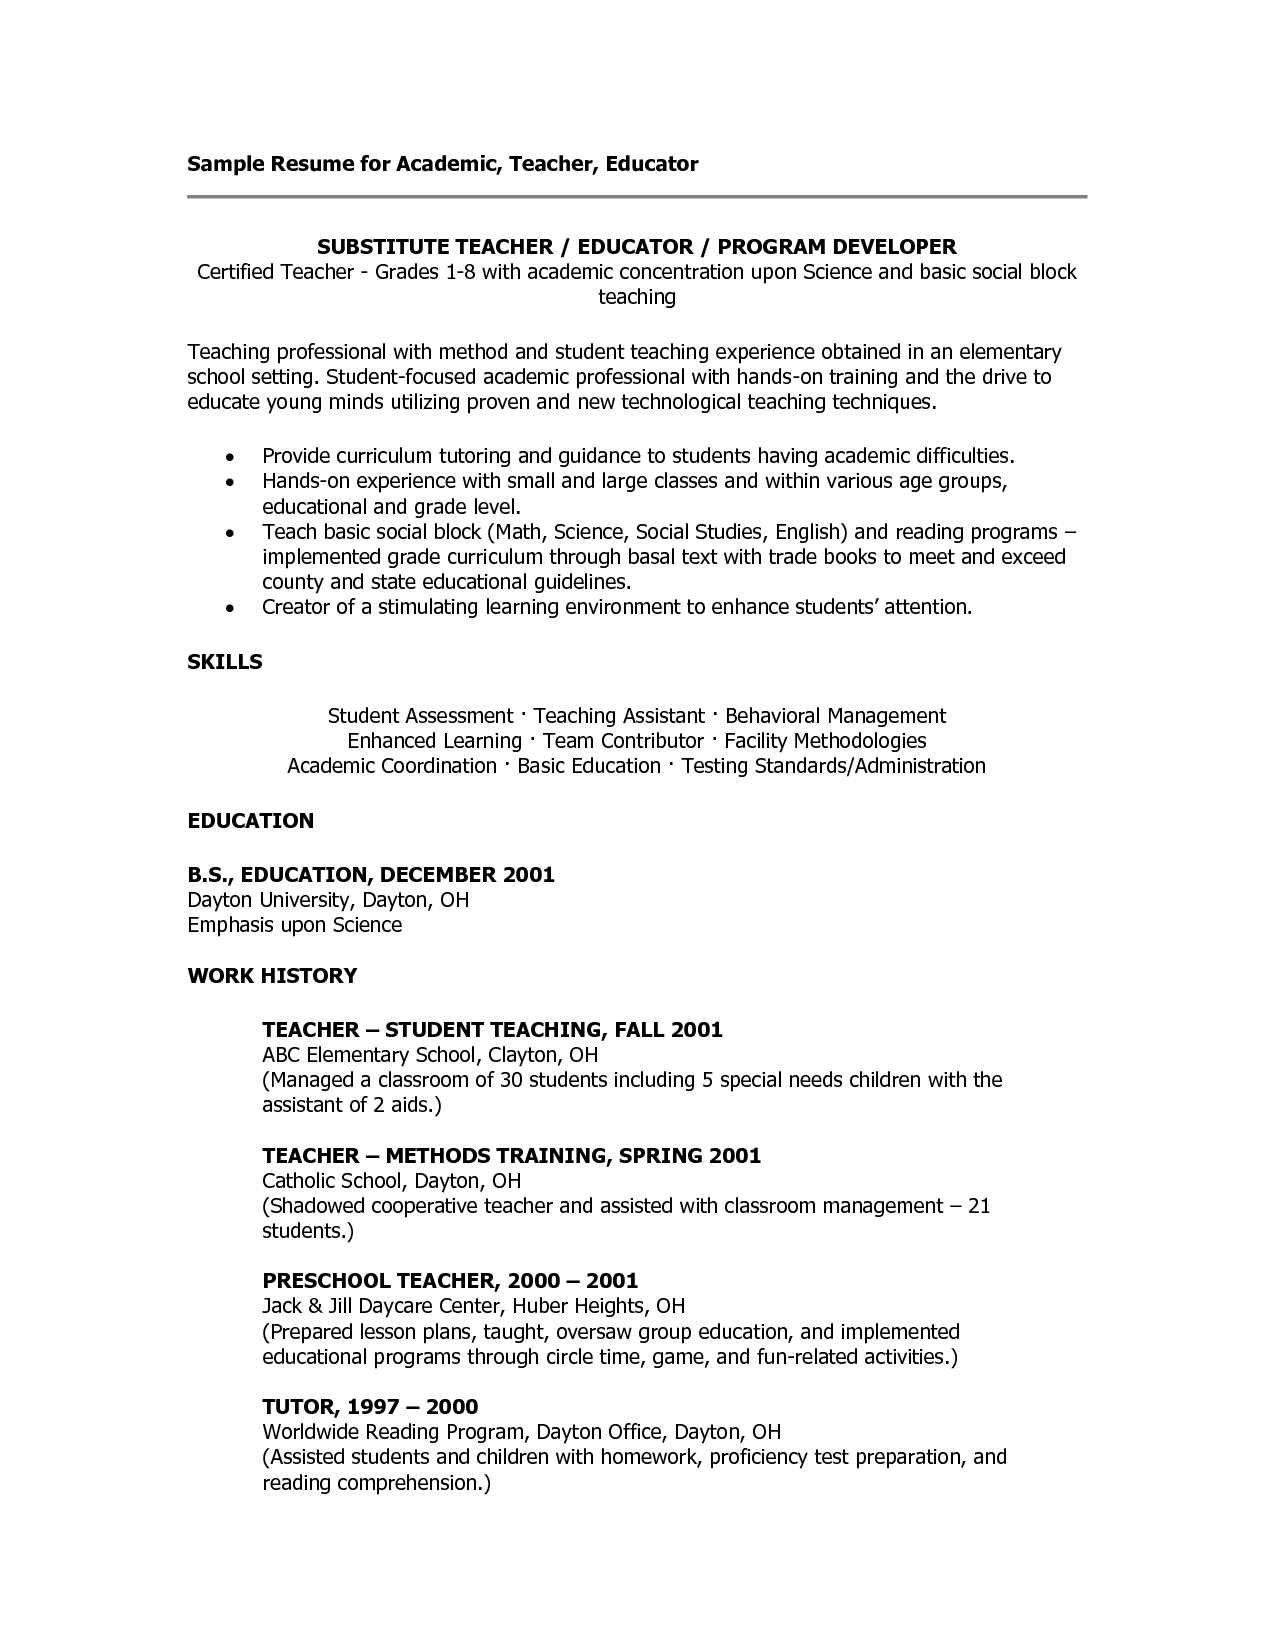 Sample Teacher Resumes | Substitute Teacher Resume  Substitute Teacher Resume Job Description